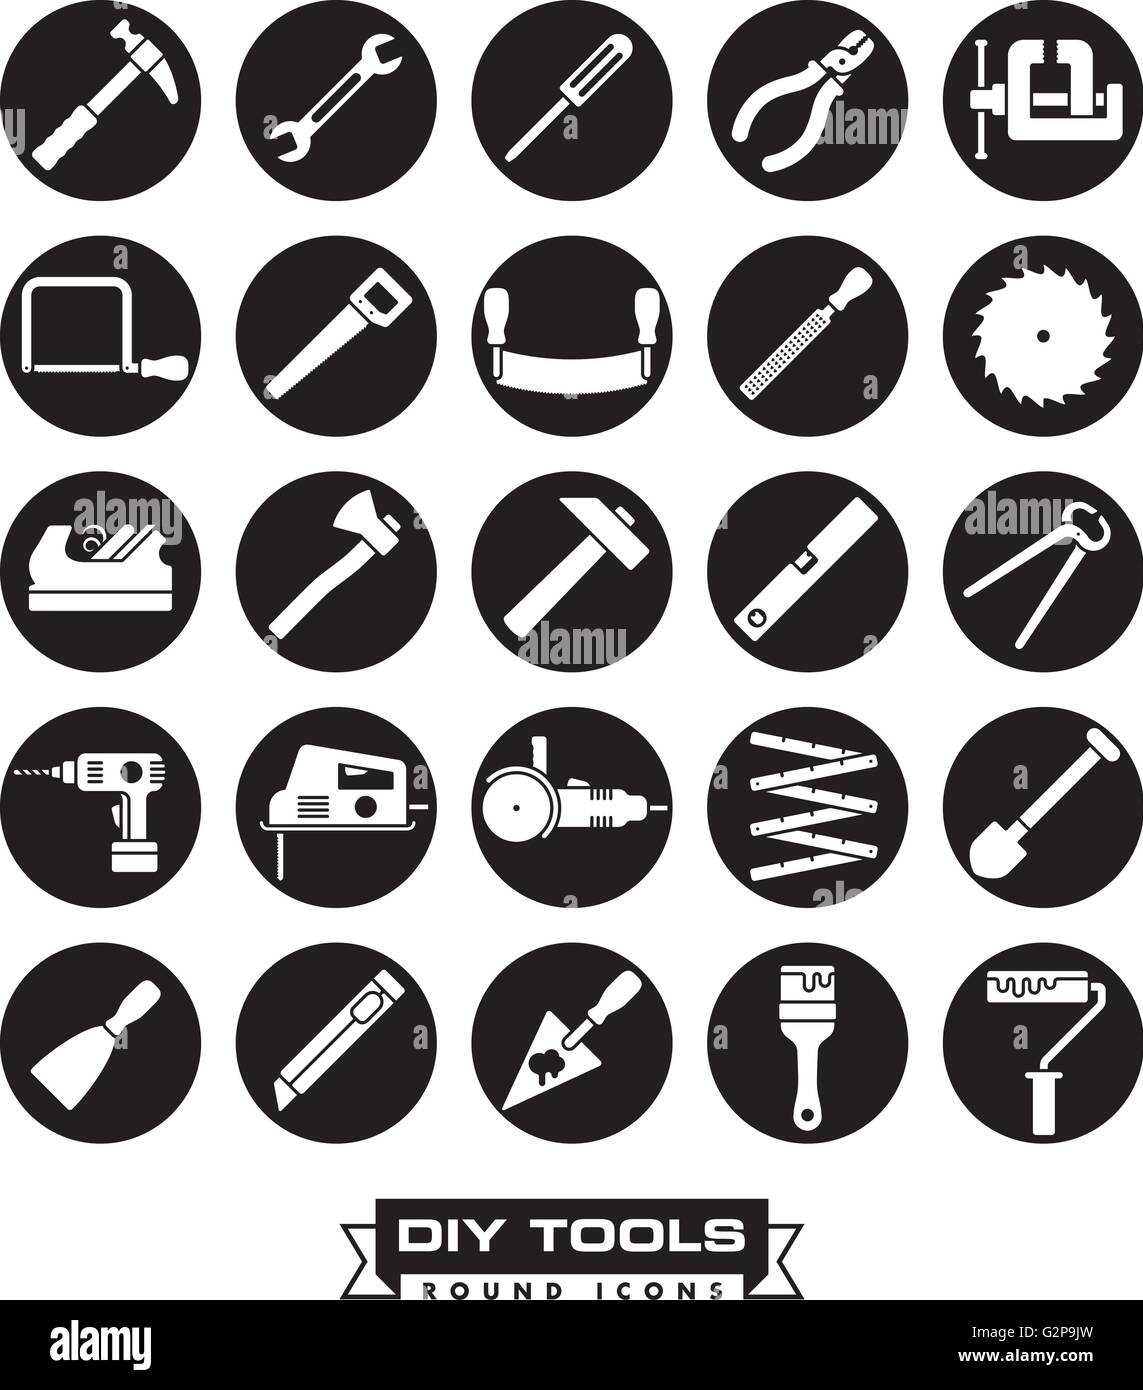 Collection of DIY and crafting tool vector icons, negative in black circles - Stock Vector